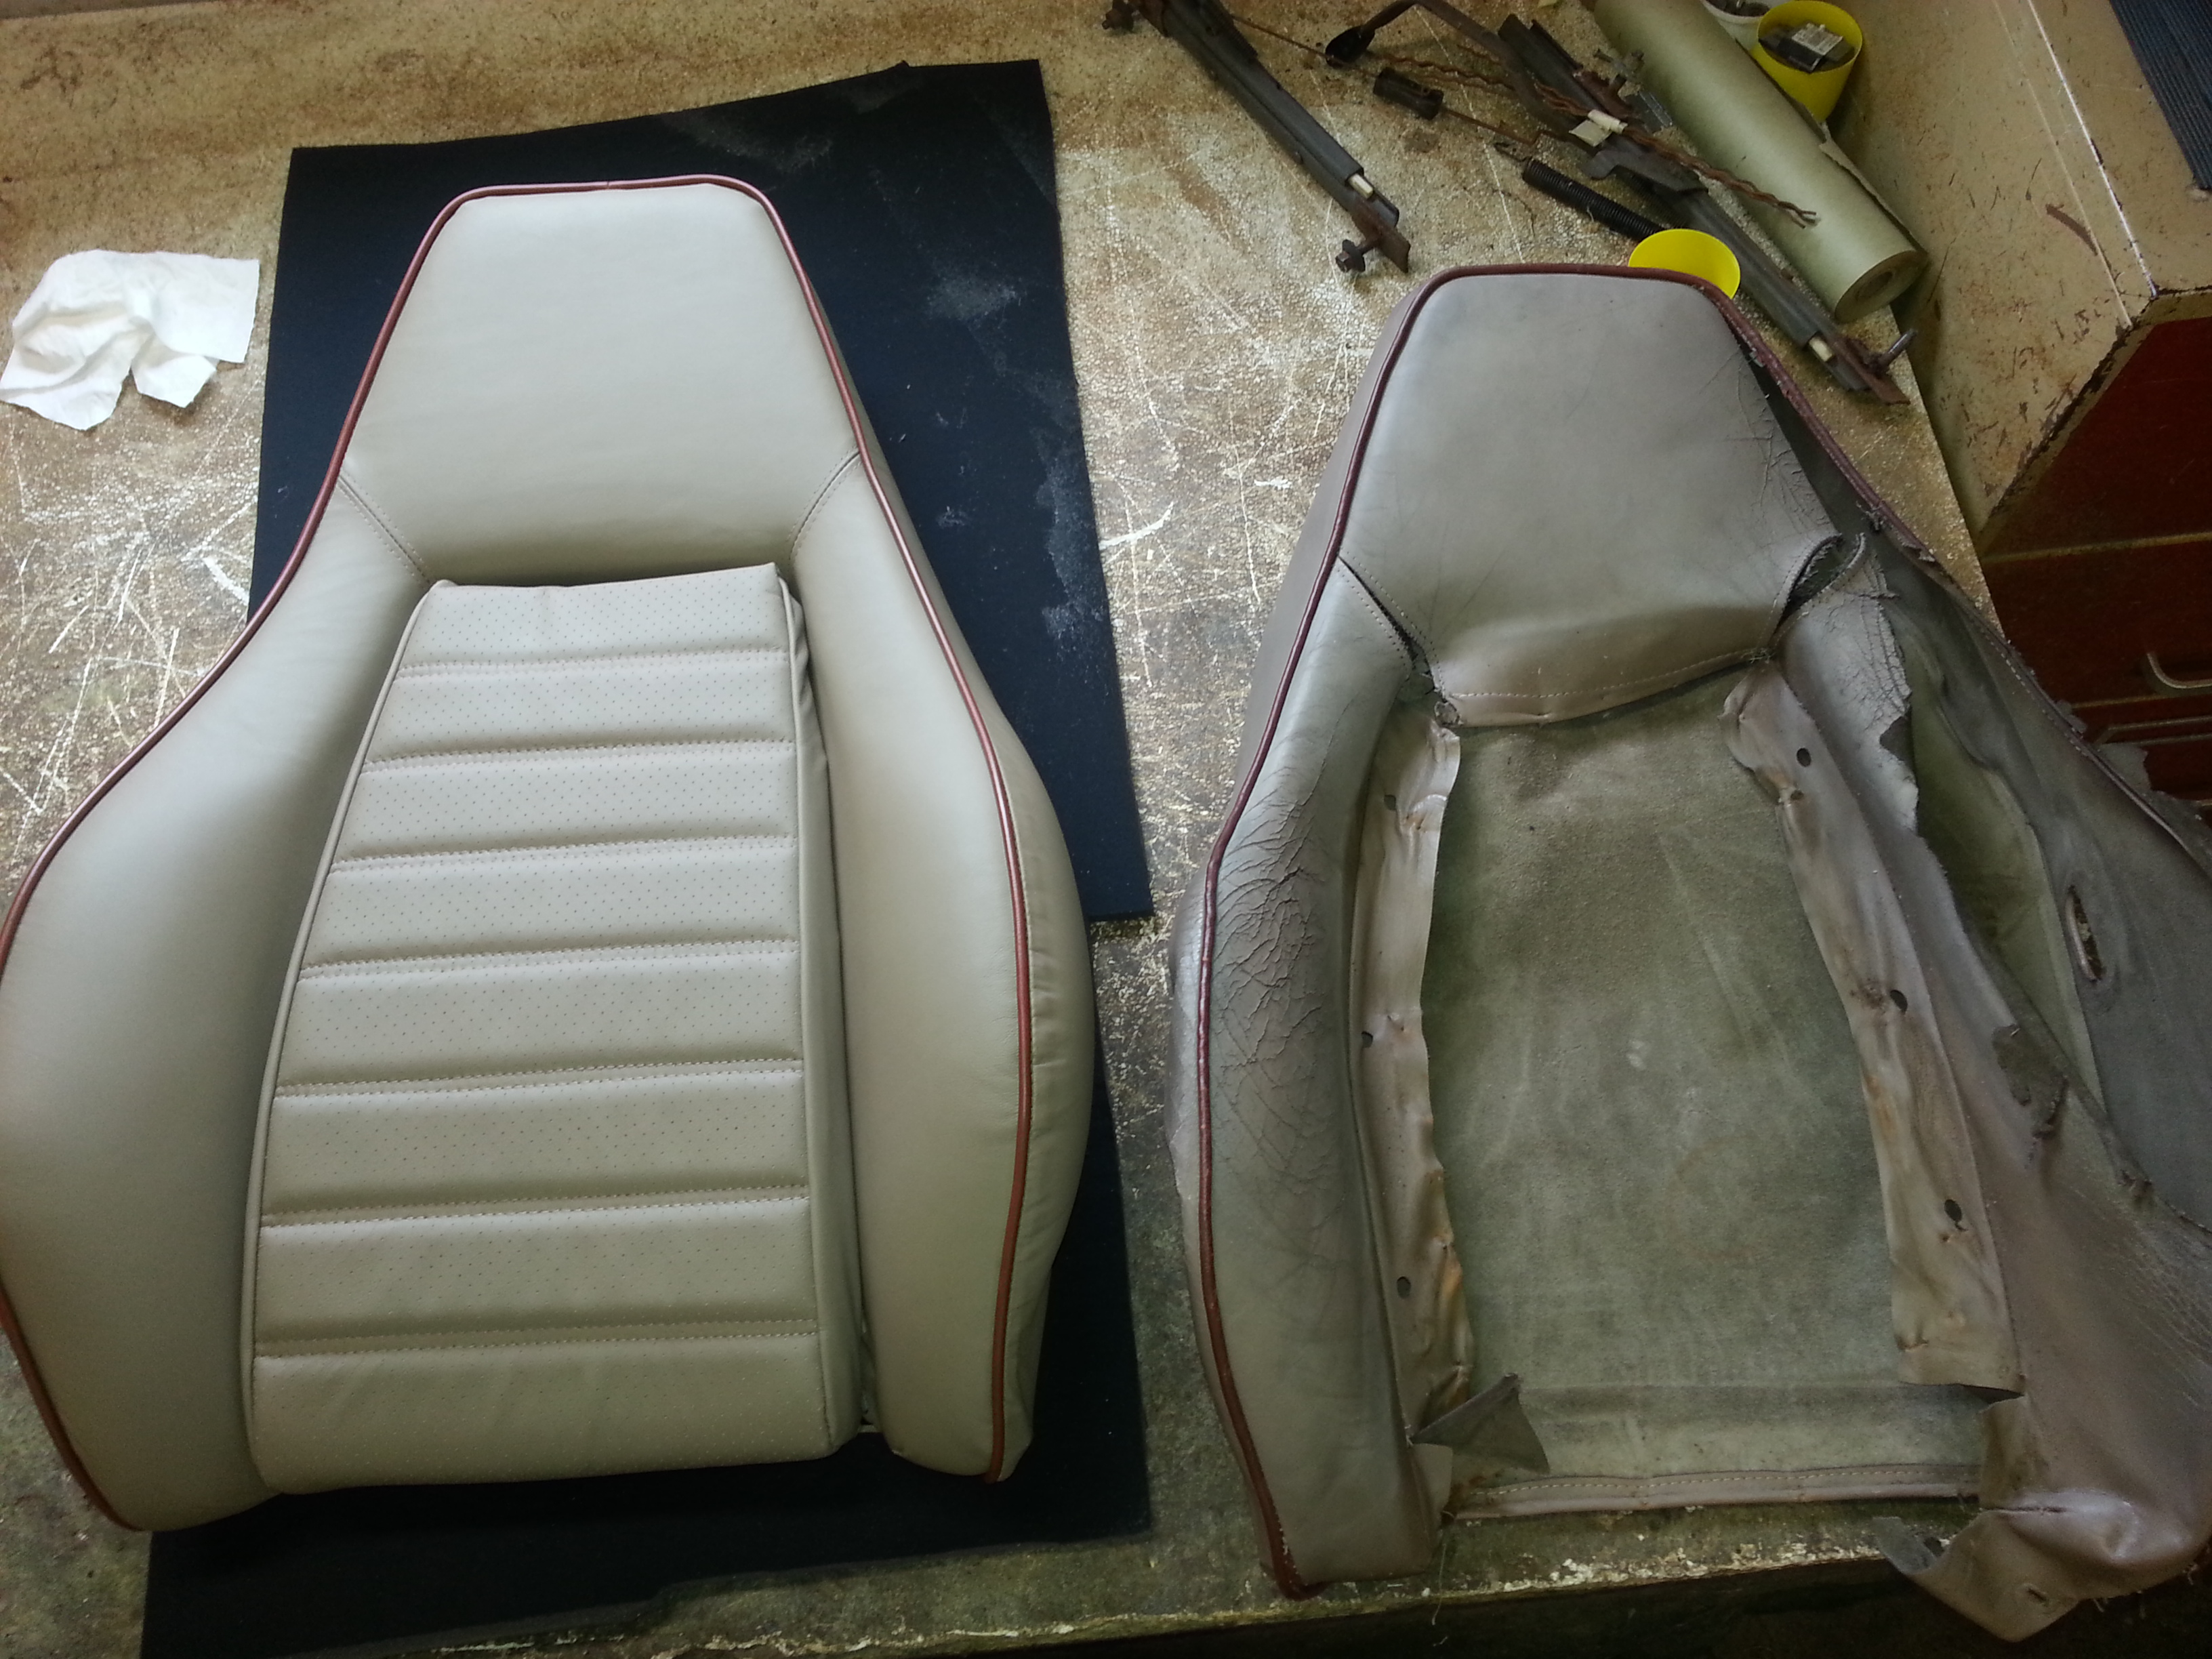 Interior design from Fine automobile and motorcycle upholstery company in Ozark